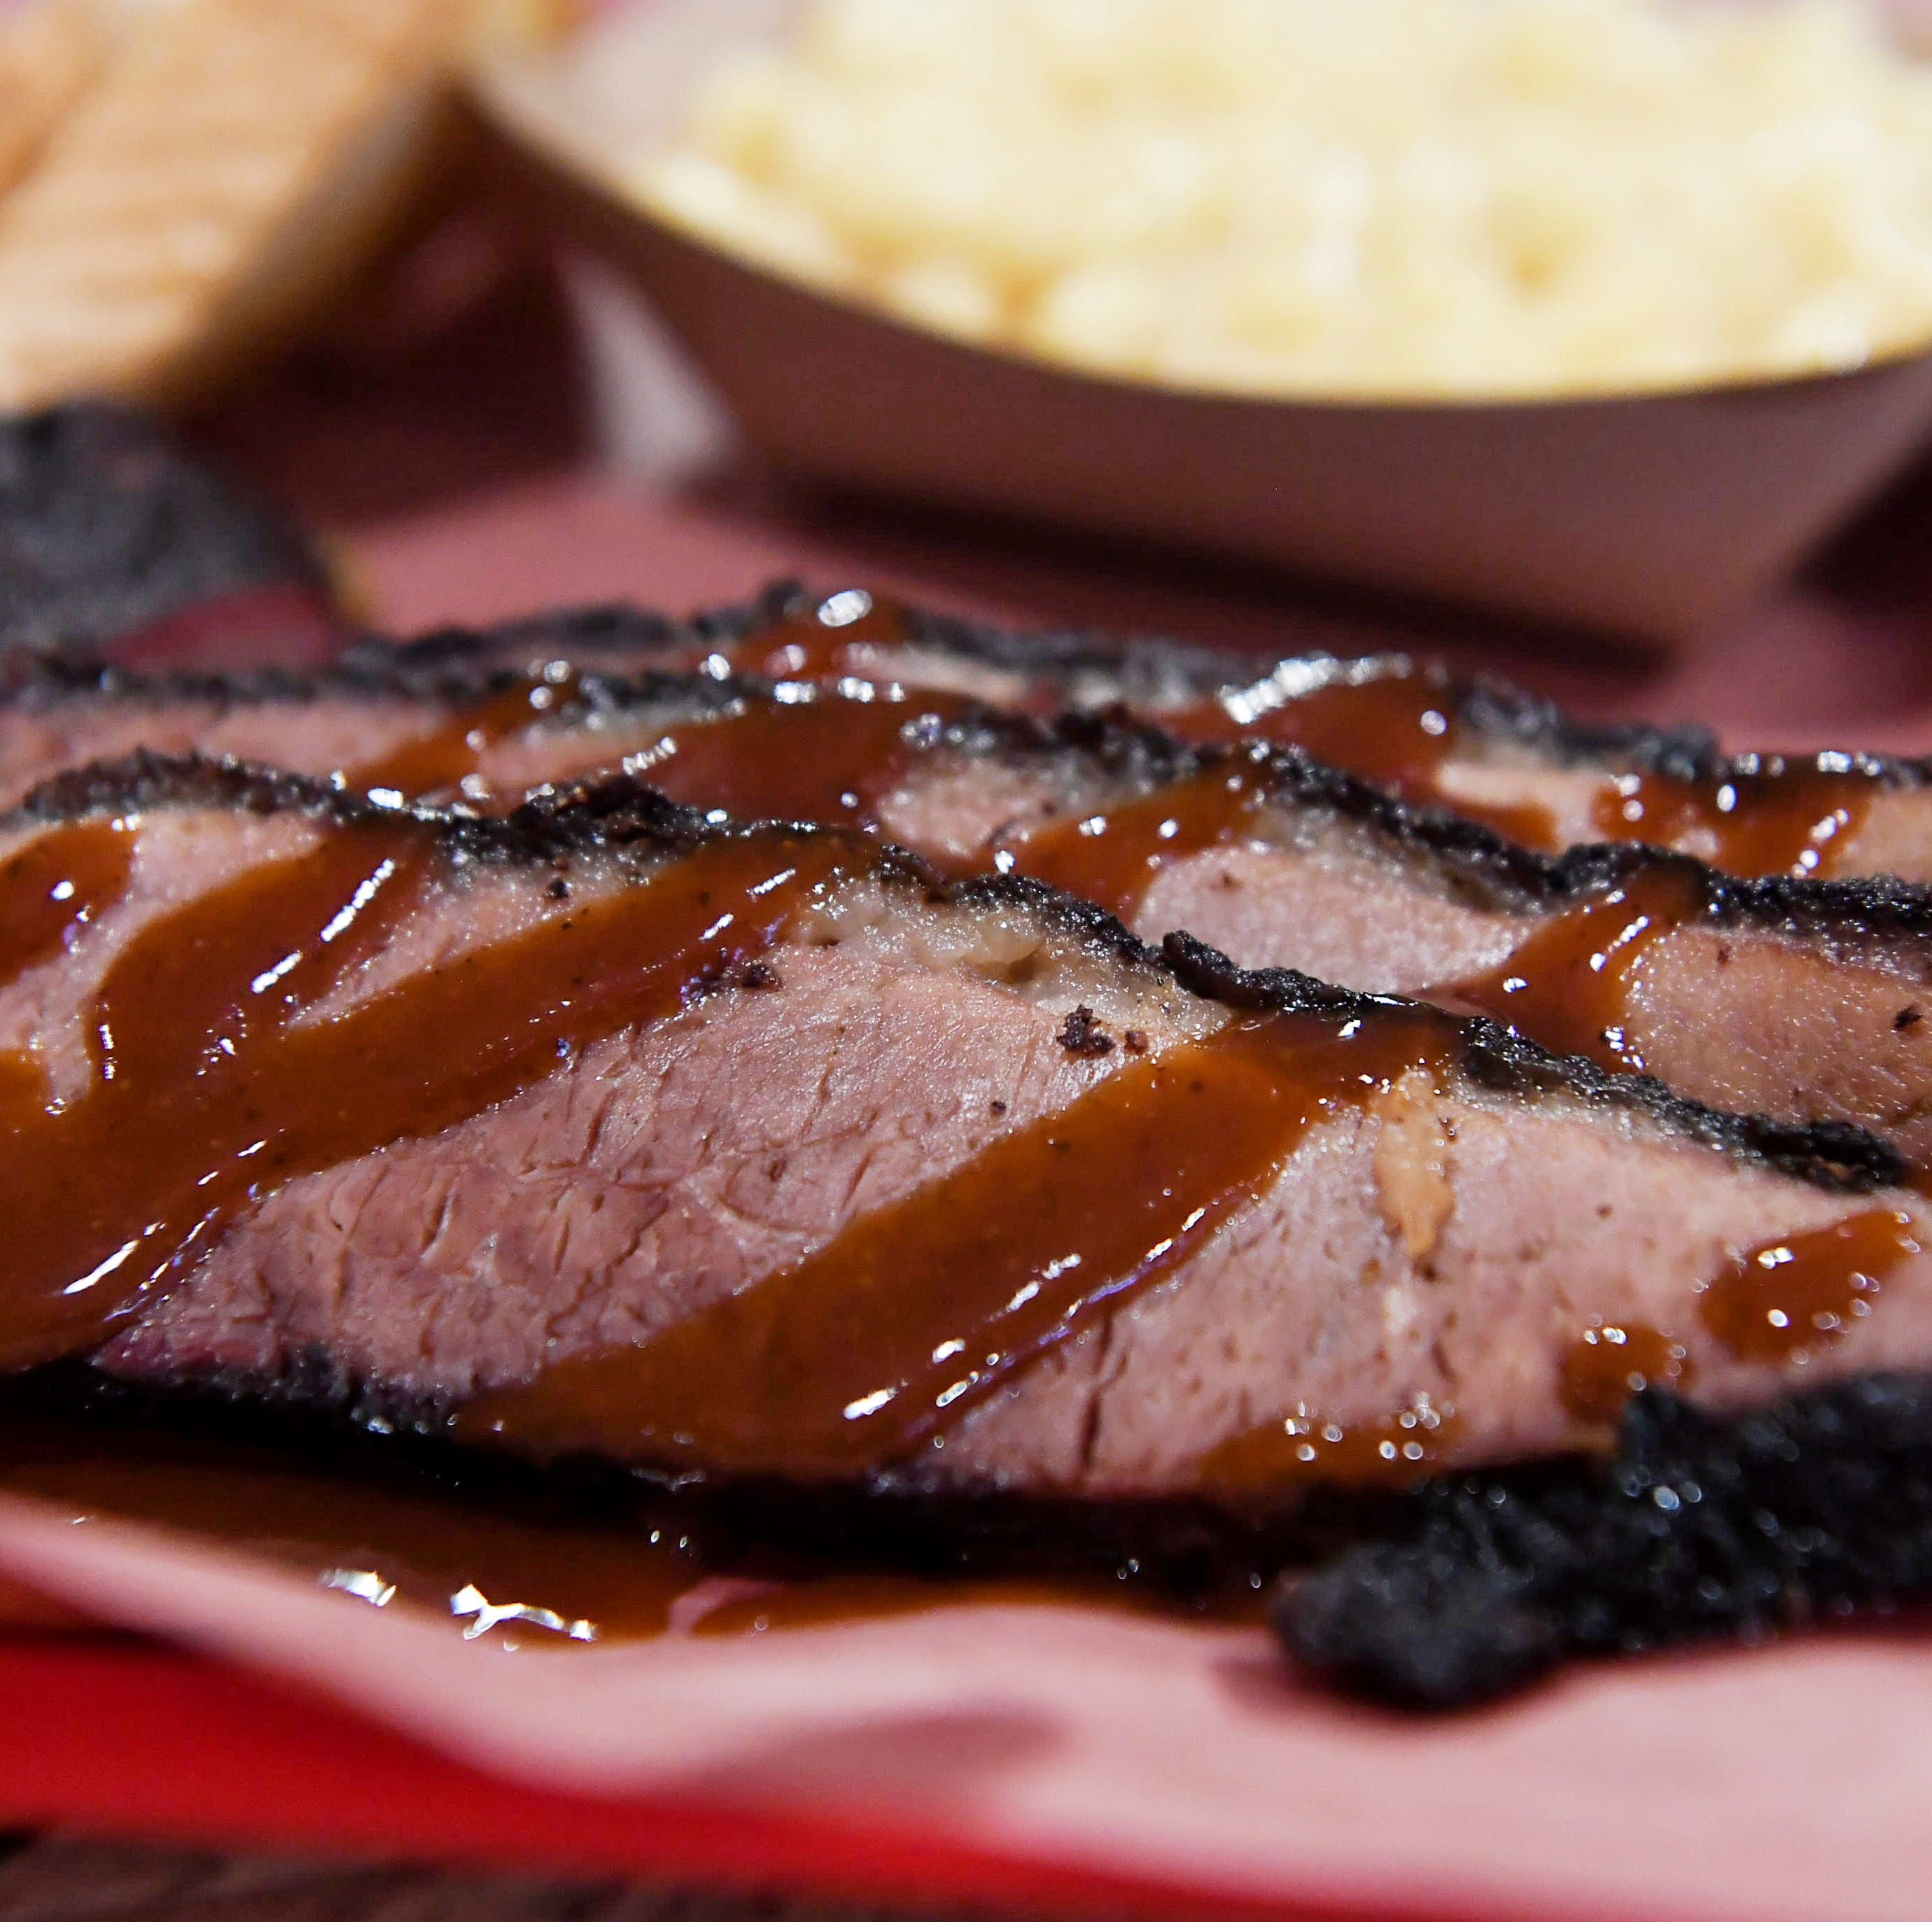 Dining review: Haywood Smokehouse in Waynesville